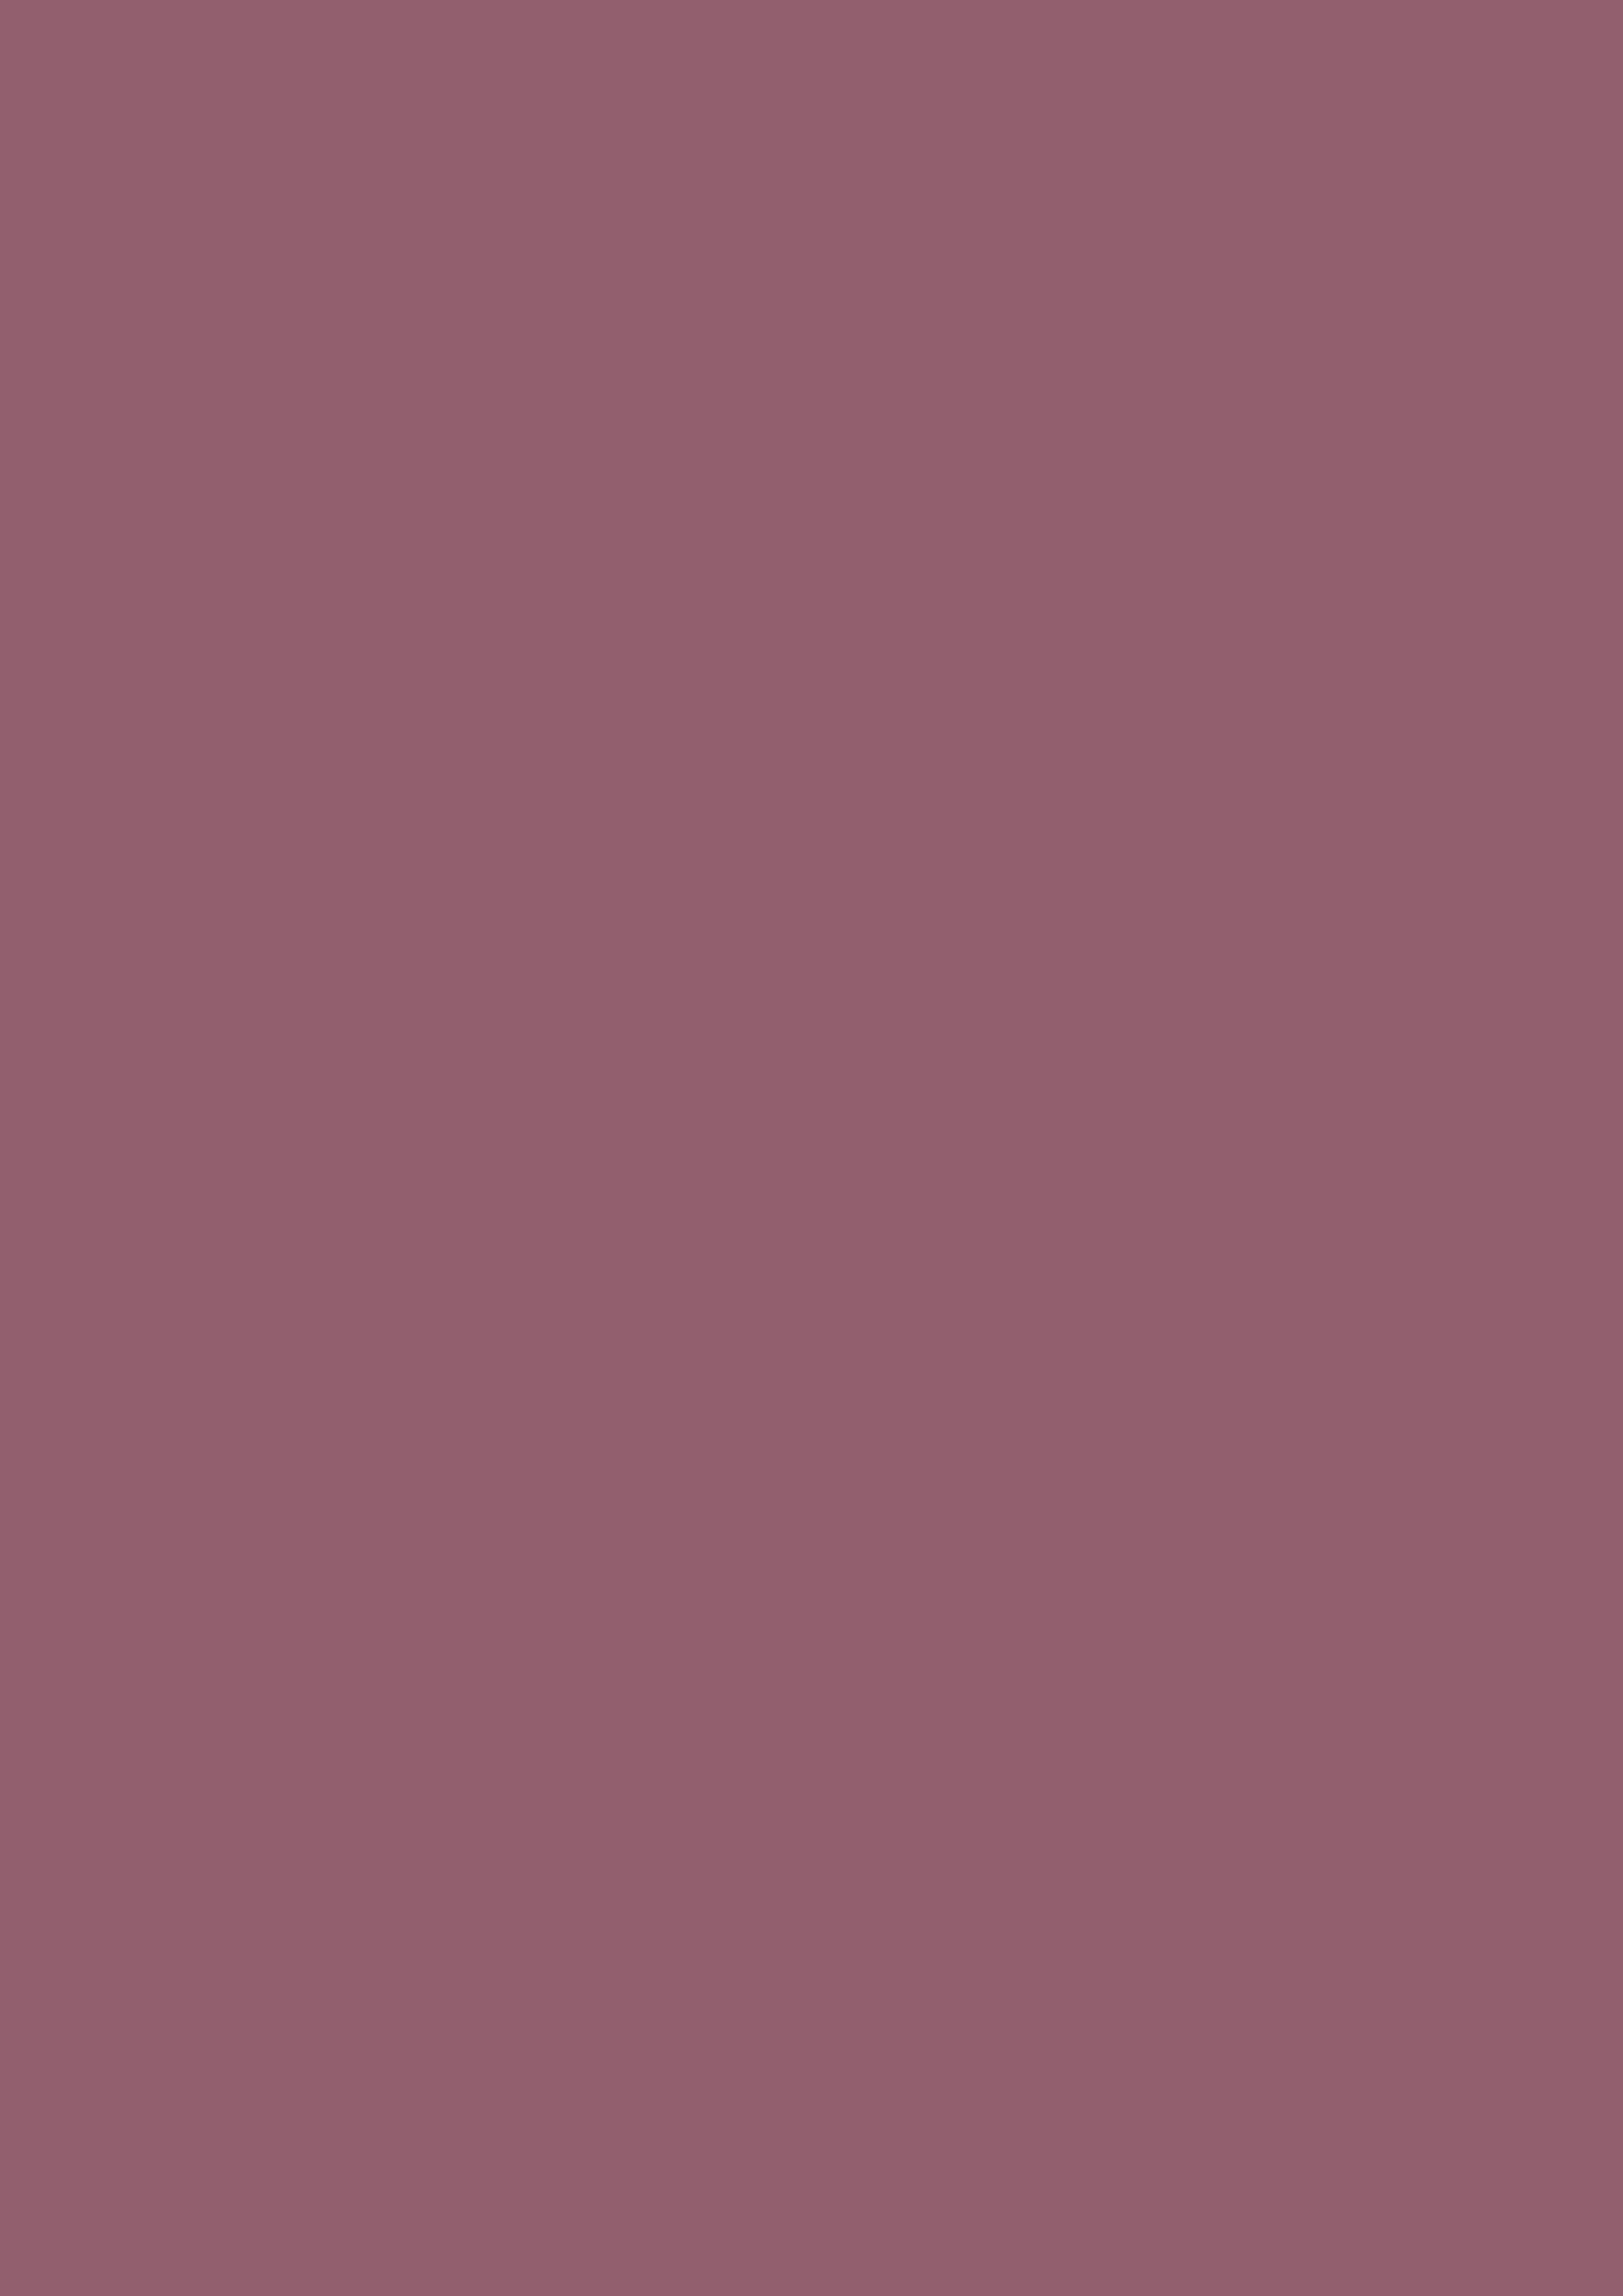 2480x3508 Raspberry Glace Solid Color Background